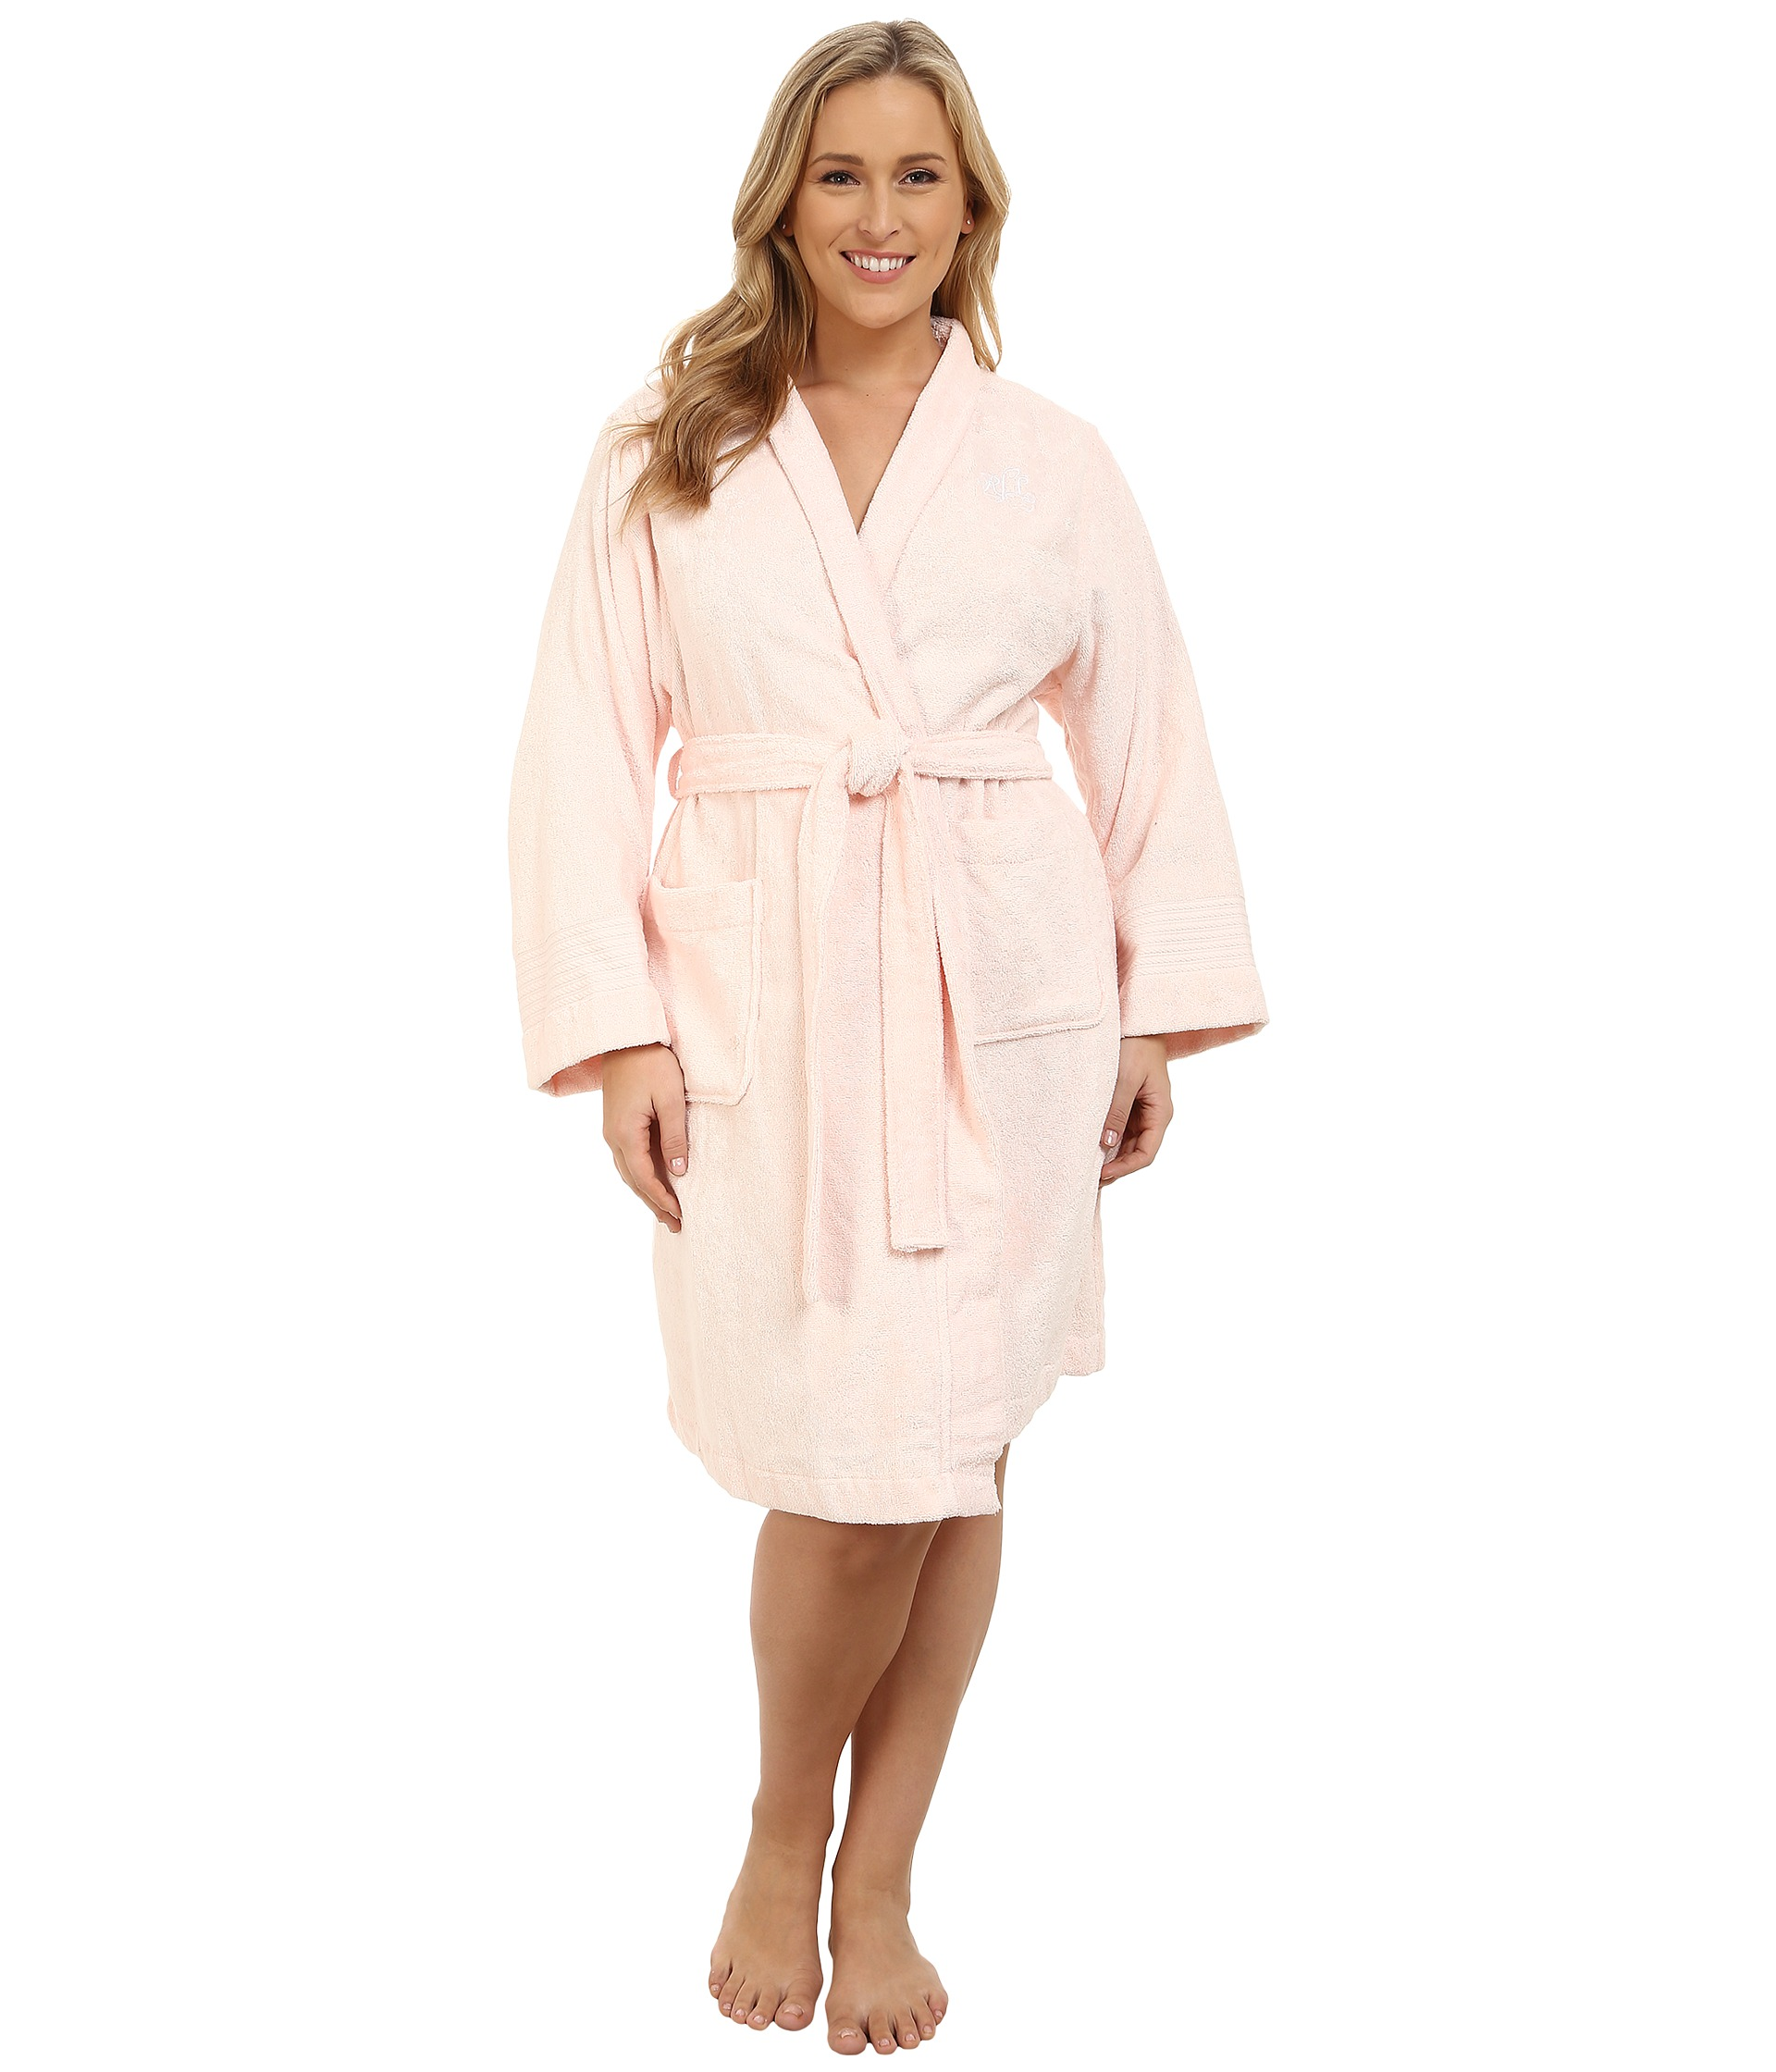 lauren ralph lauren plus size greenwich robe light pink free shipping both ways. Black Bedroom Furniture Sets. Home Design Ideas